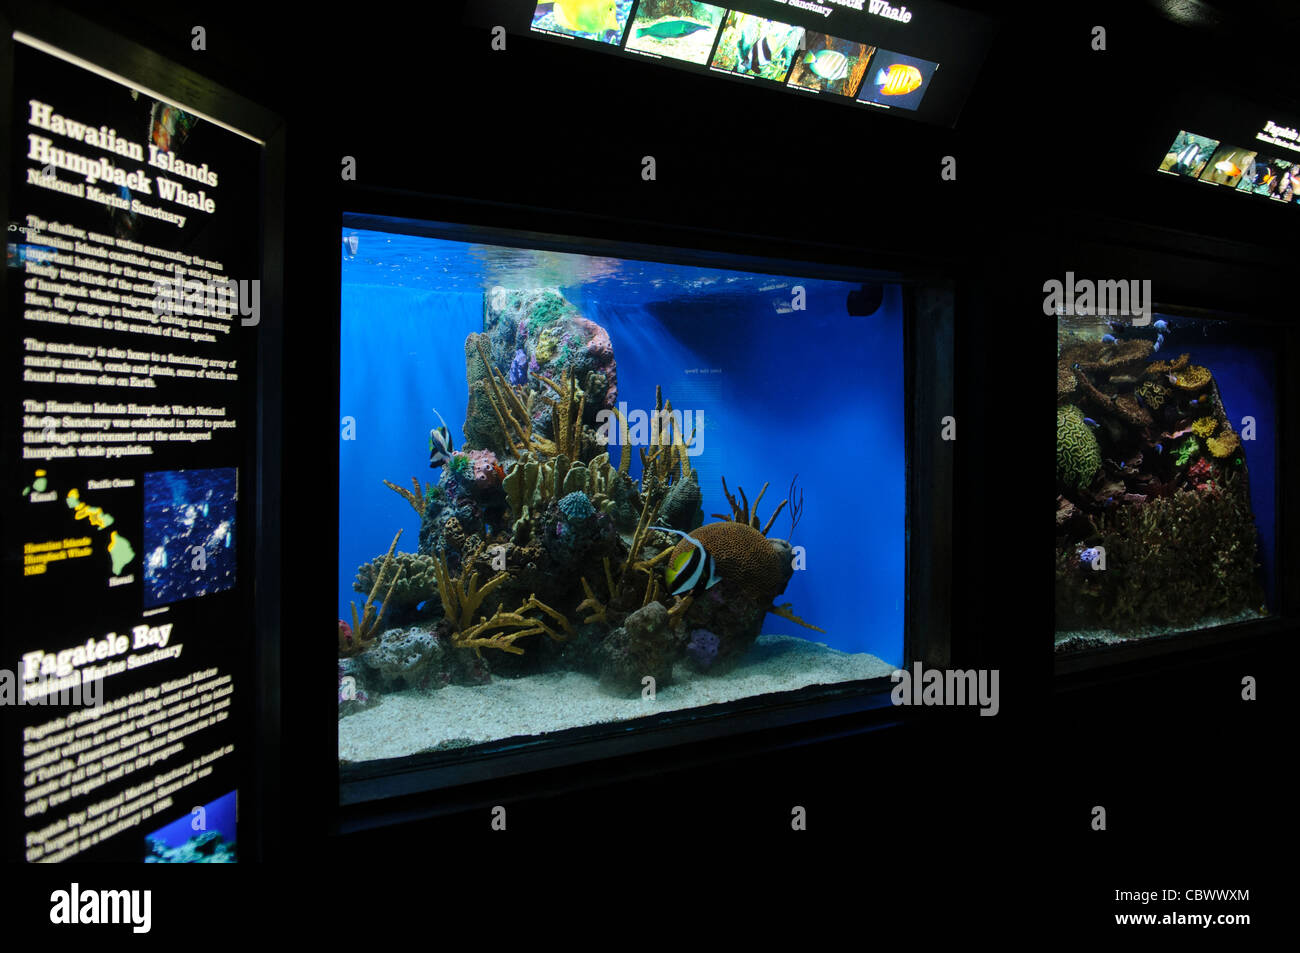 WASHINGTON DC, USA - A tropical reef exhibit at the National Aquarium in Washington DC. The National Aquarium is - Stock Image